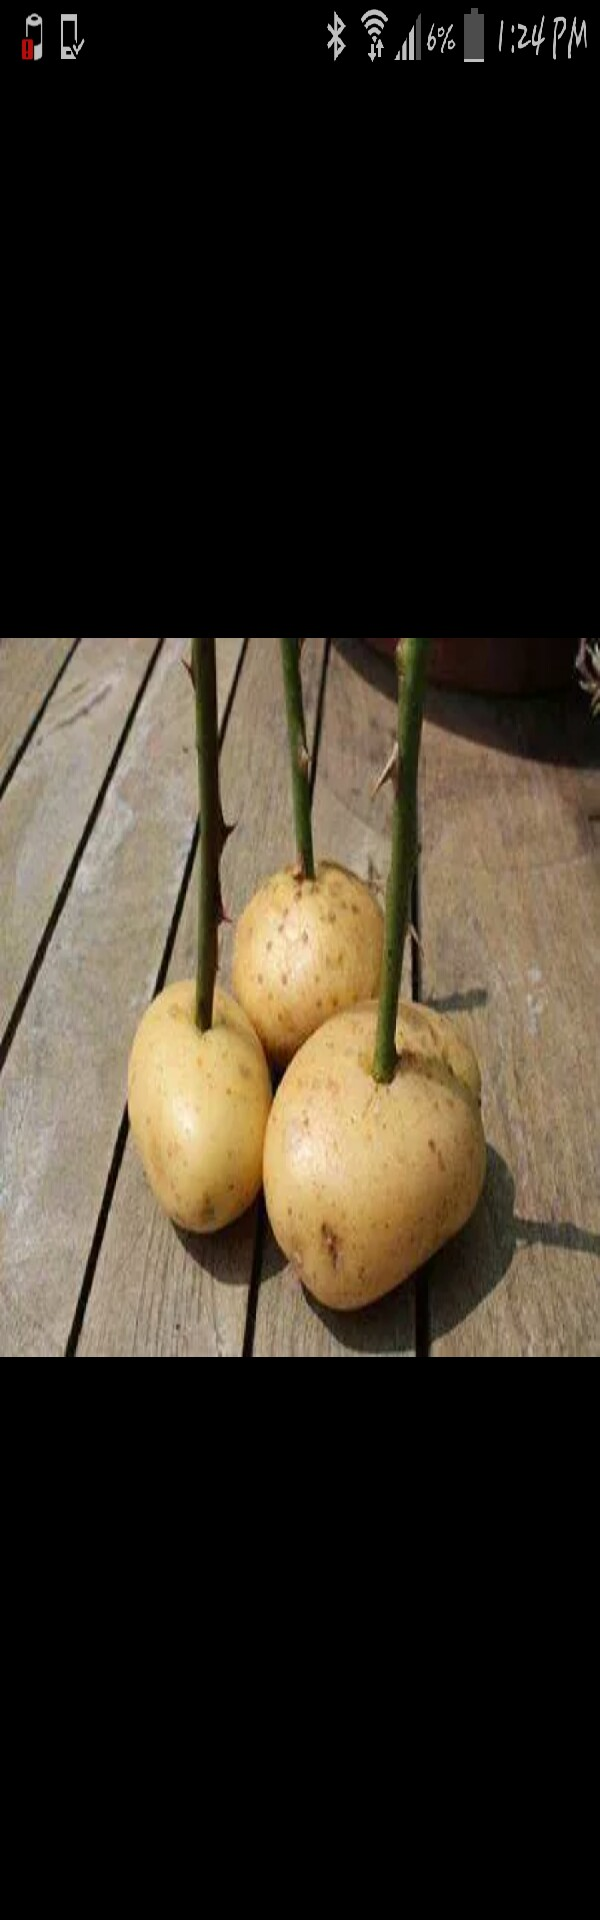 push cutting ends into potato. . plant potato into ground... the potato will help the roots grow :)